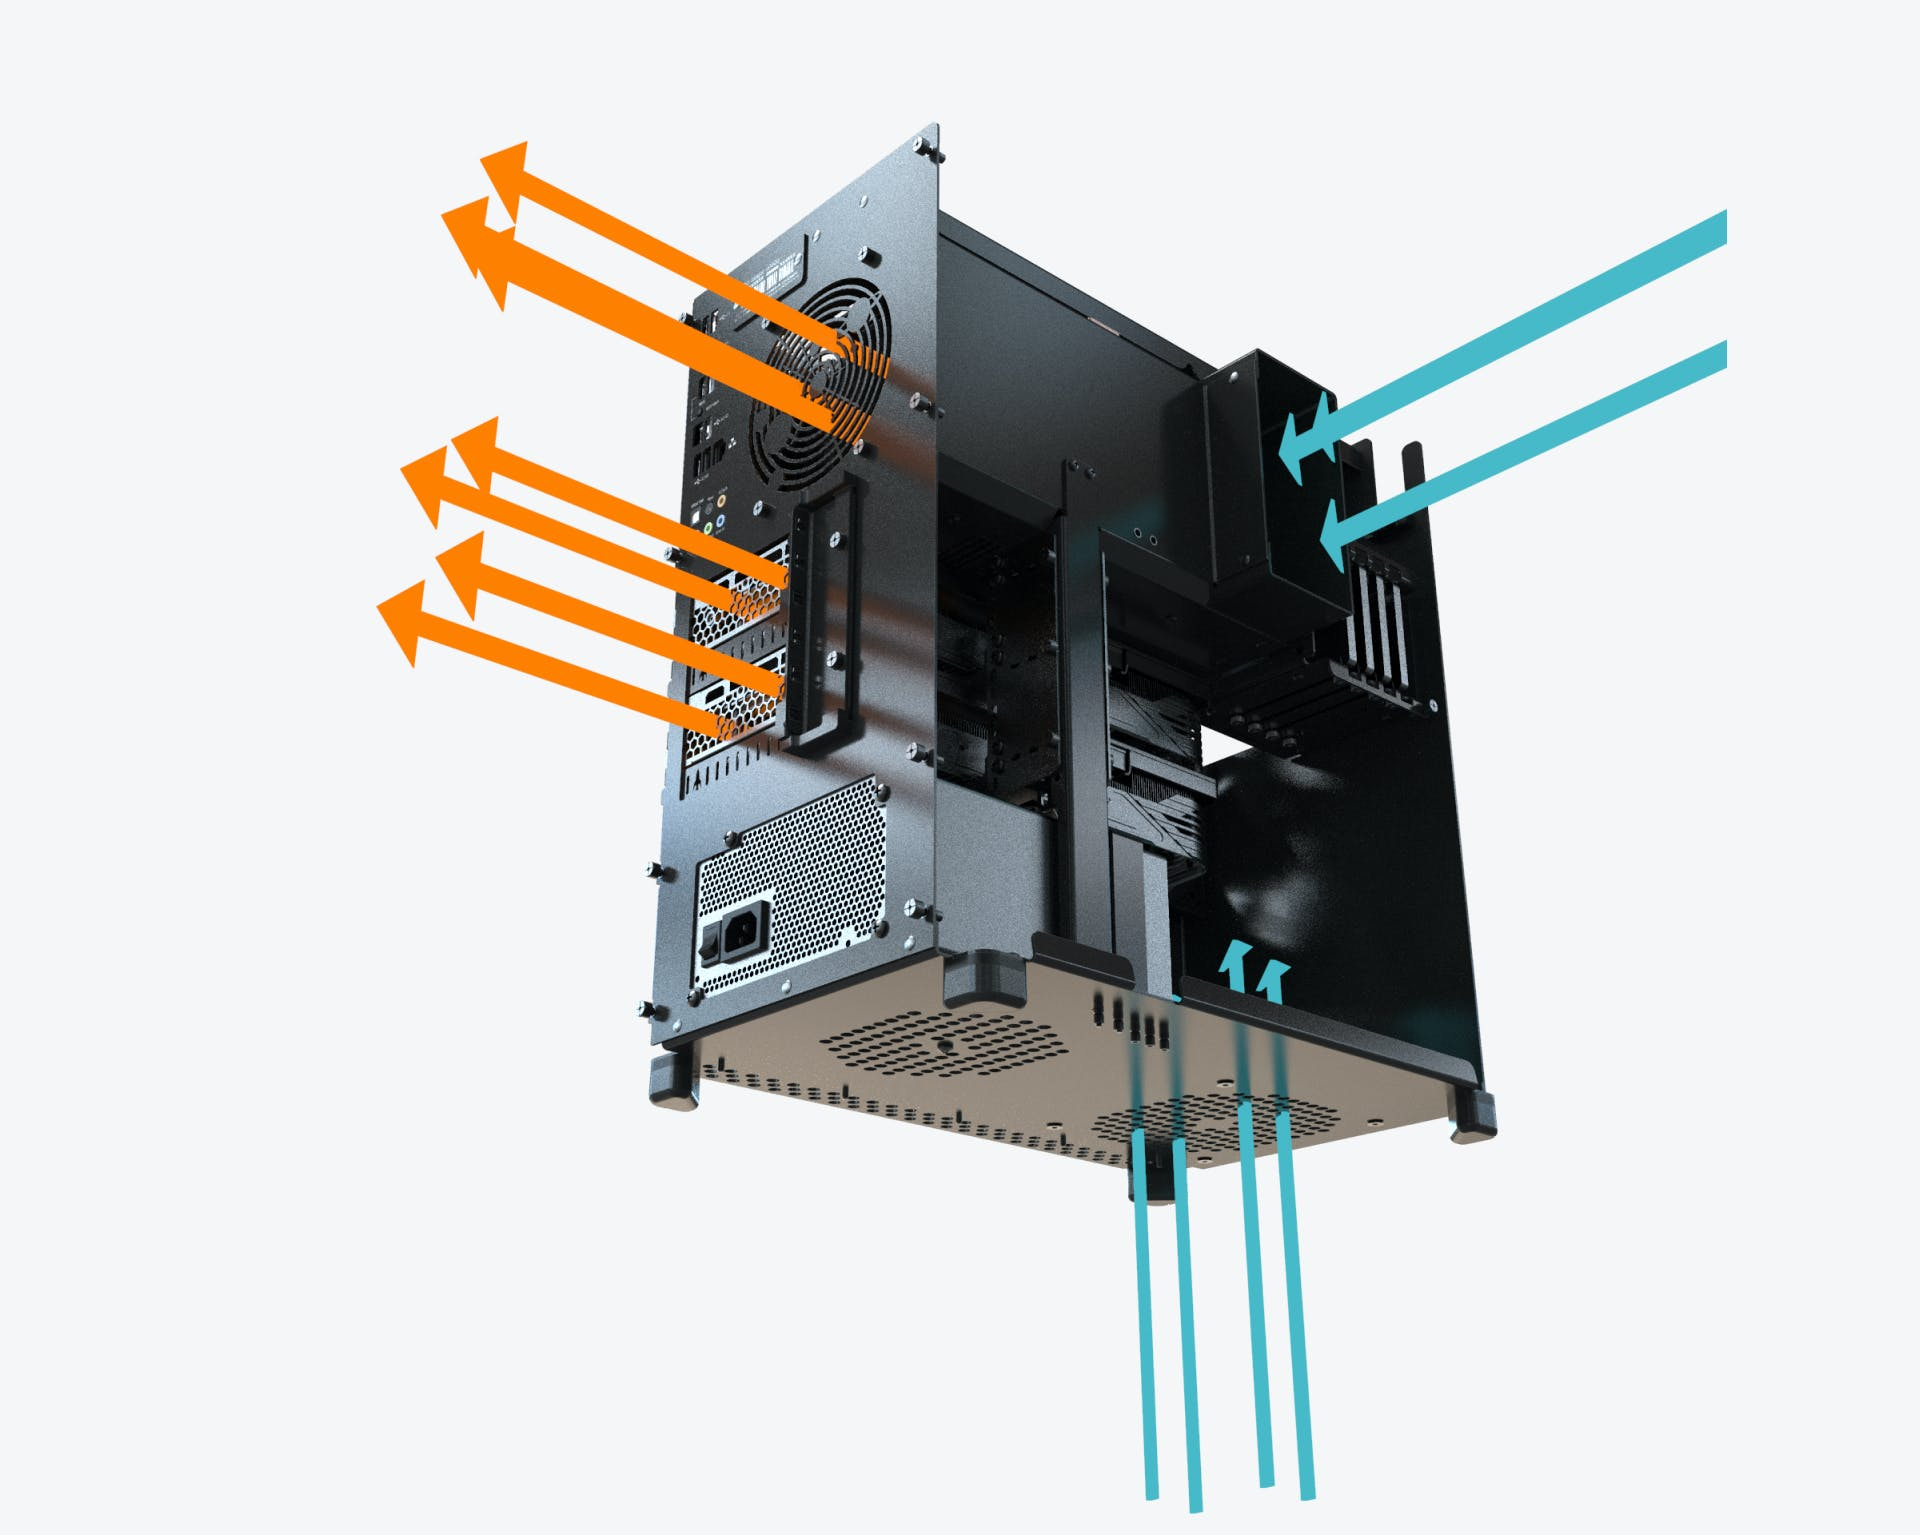 The air flows through the duct to cool the CPU, and is separated from the airflow cooling the GPU.